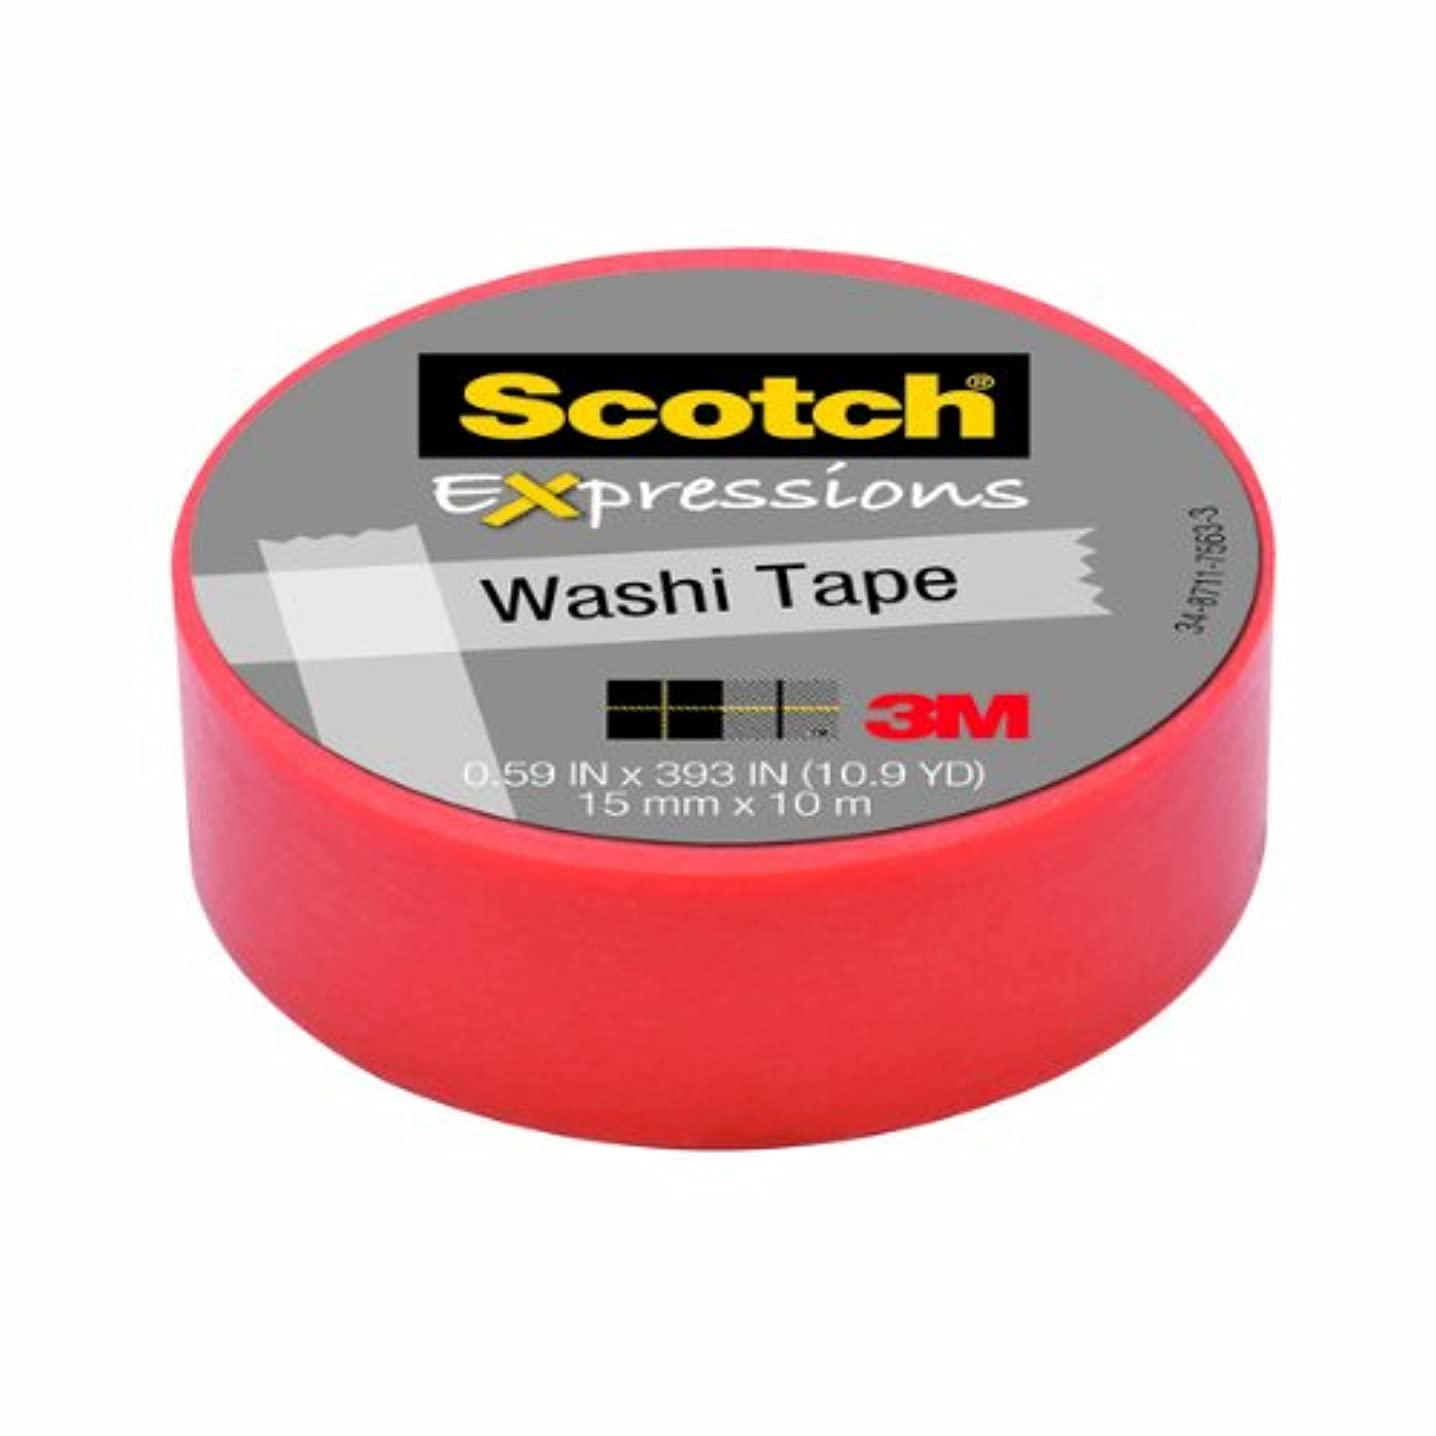 Scotch Expressions Washi Tape, .59-Inches x 393-Inches, Pastel Pink, 6 Rolls/Pack